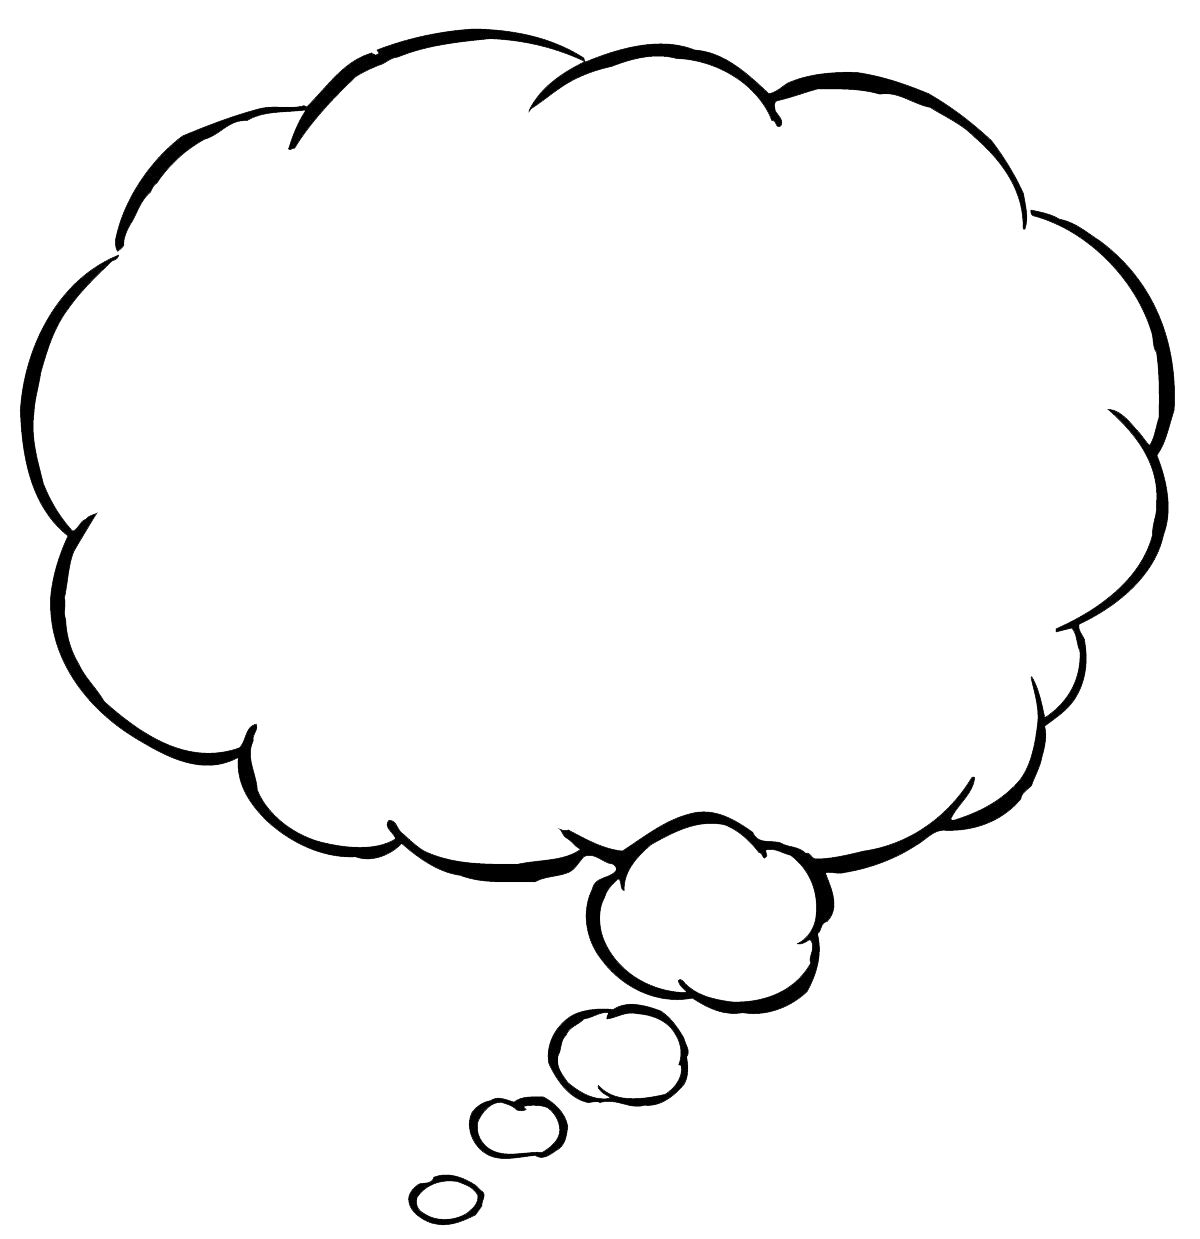 Thinking Bubble Png - 3595 - TransparentPNG